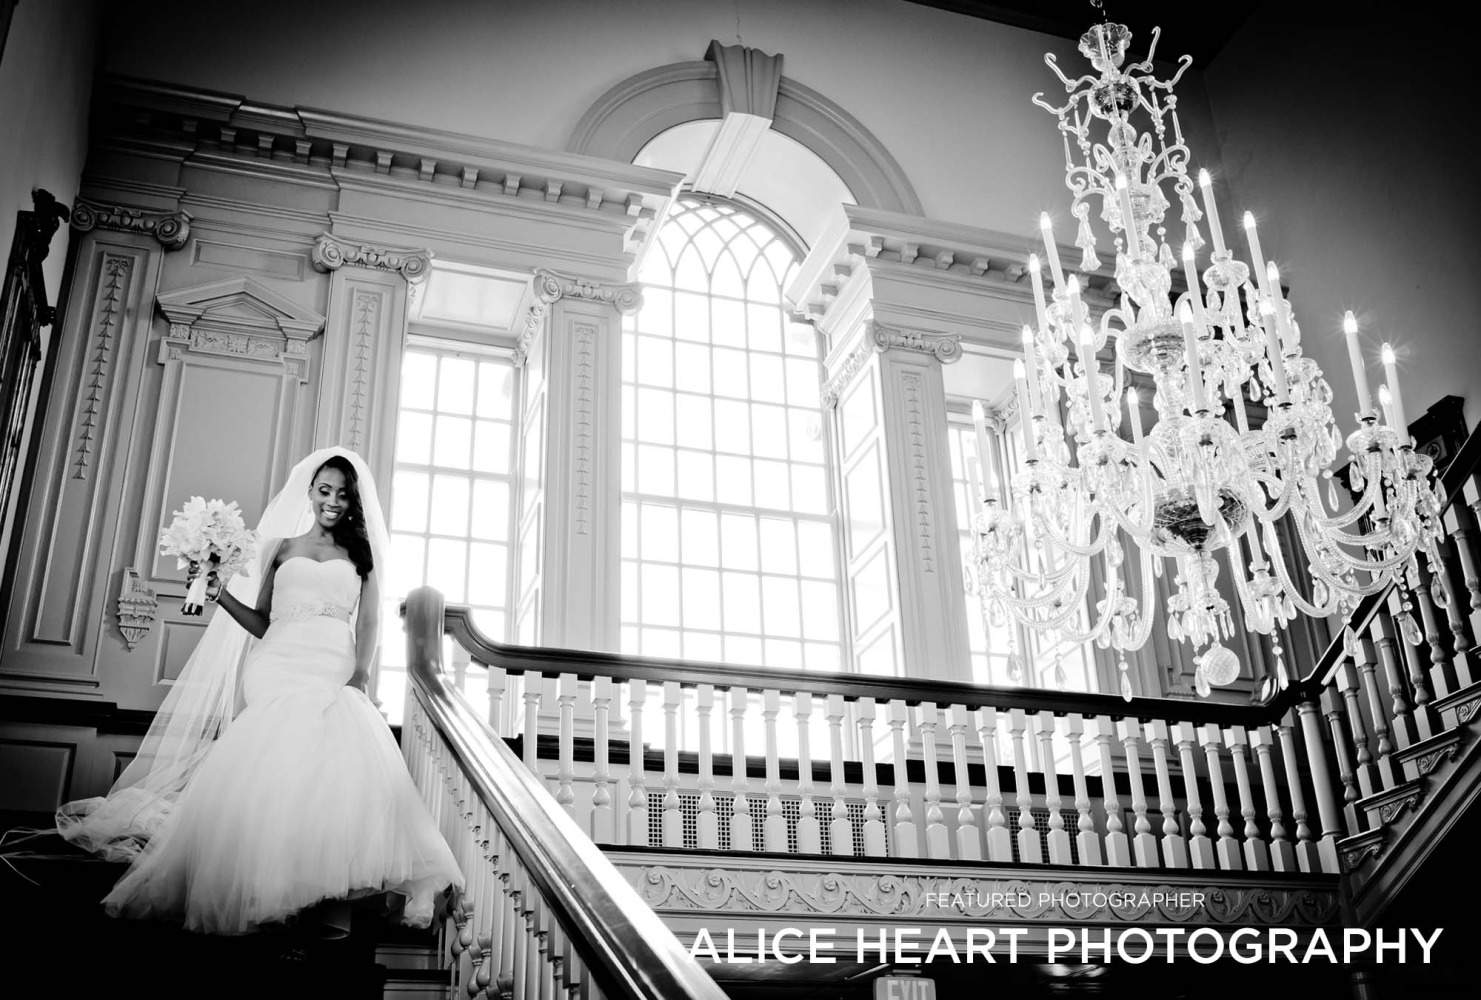 Alice Heart Photography - Featured Photographer